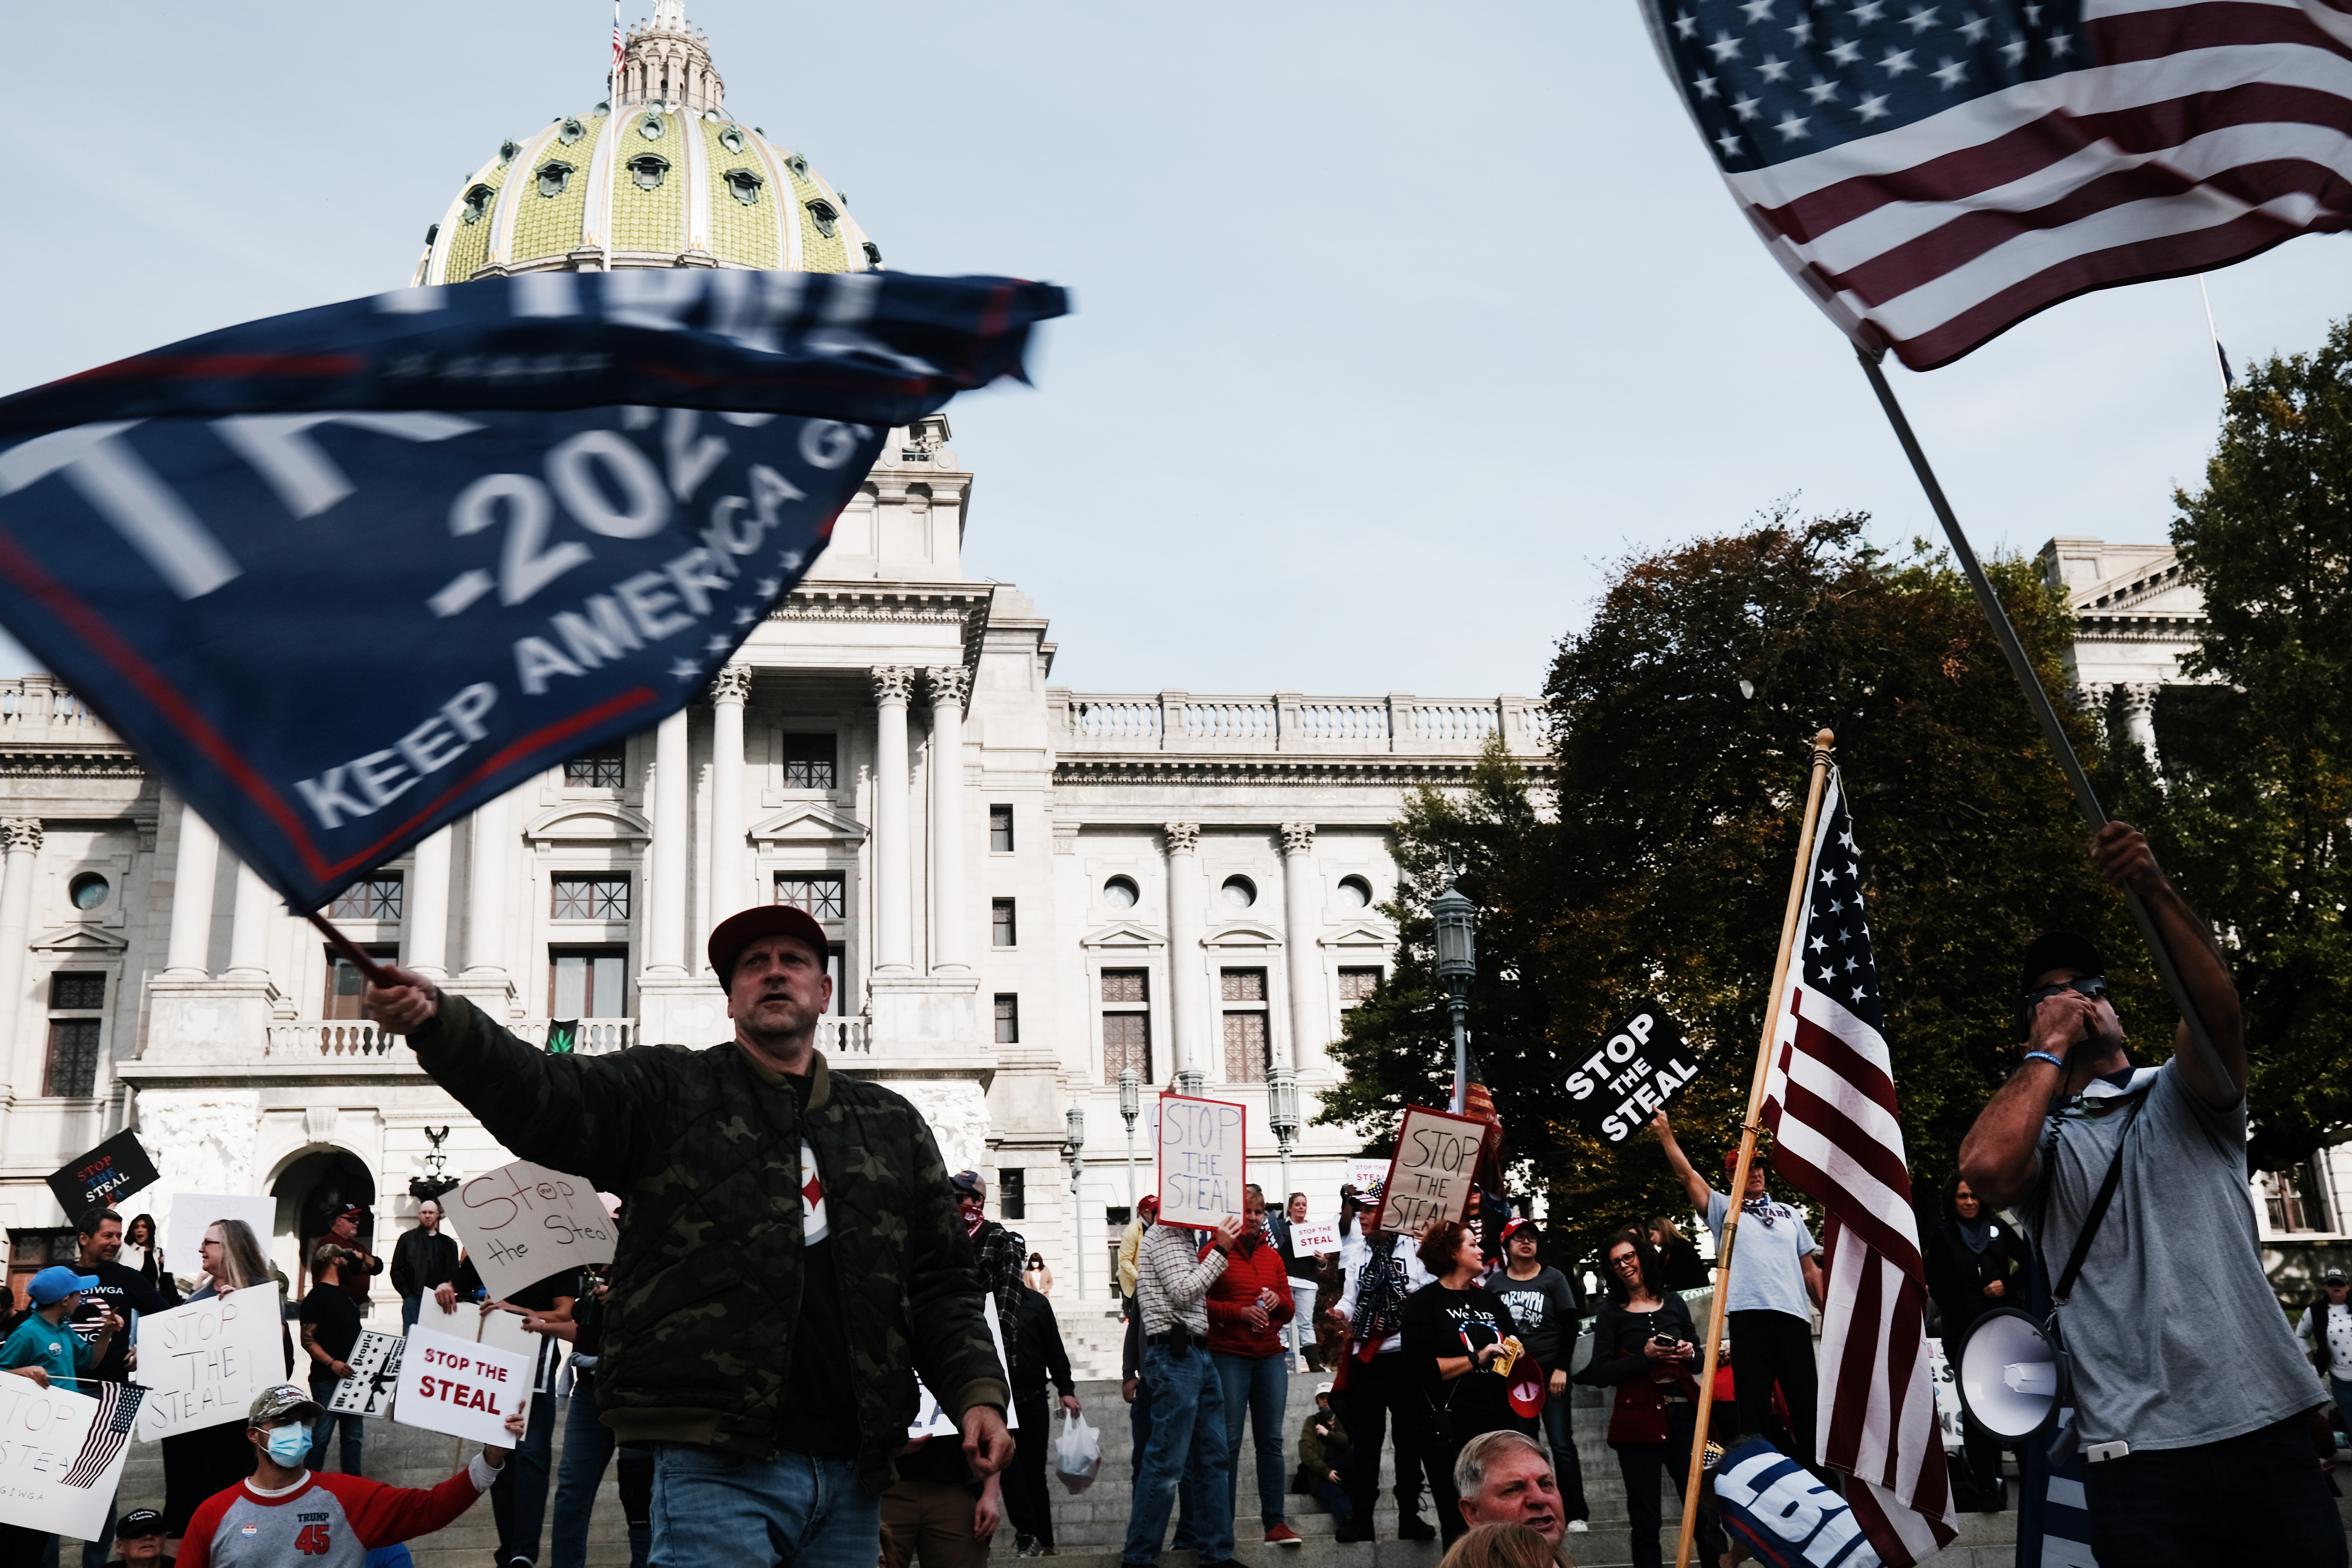 A protester waves a Trump flag in front of the Pennsylvania State Capitol building.